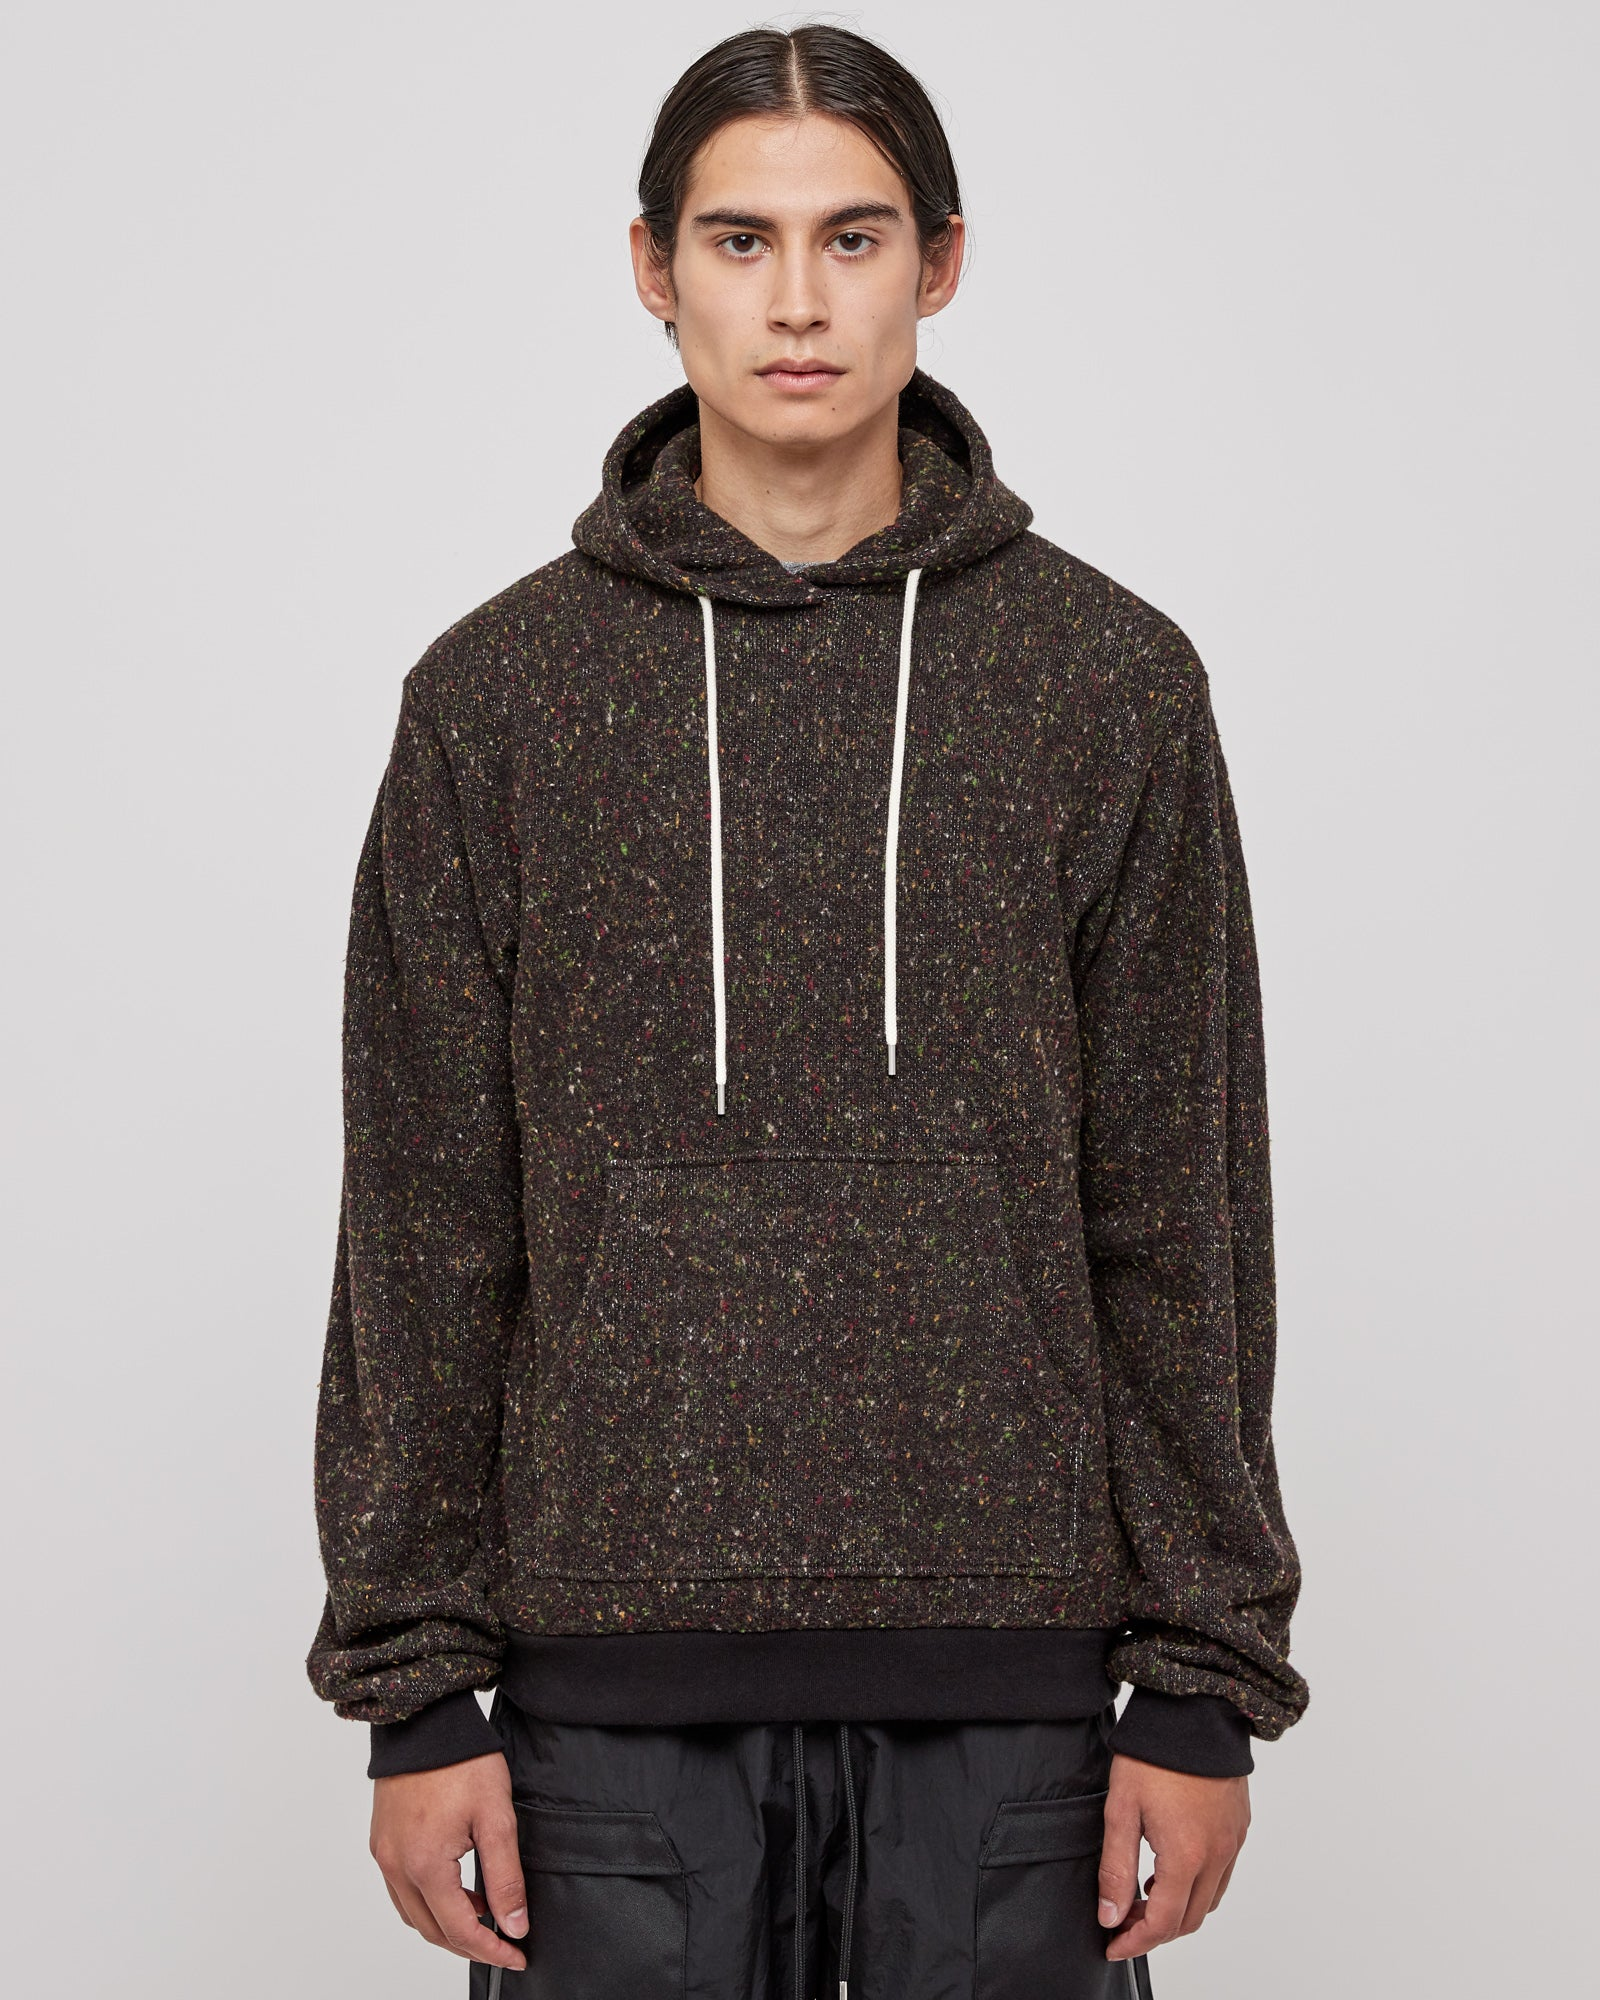 Fireside Beach Hoodie in Black Multi